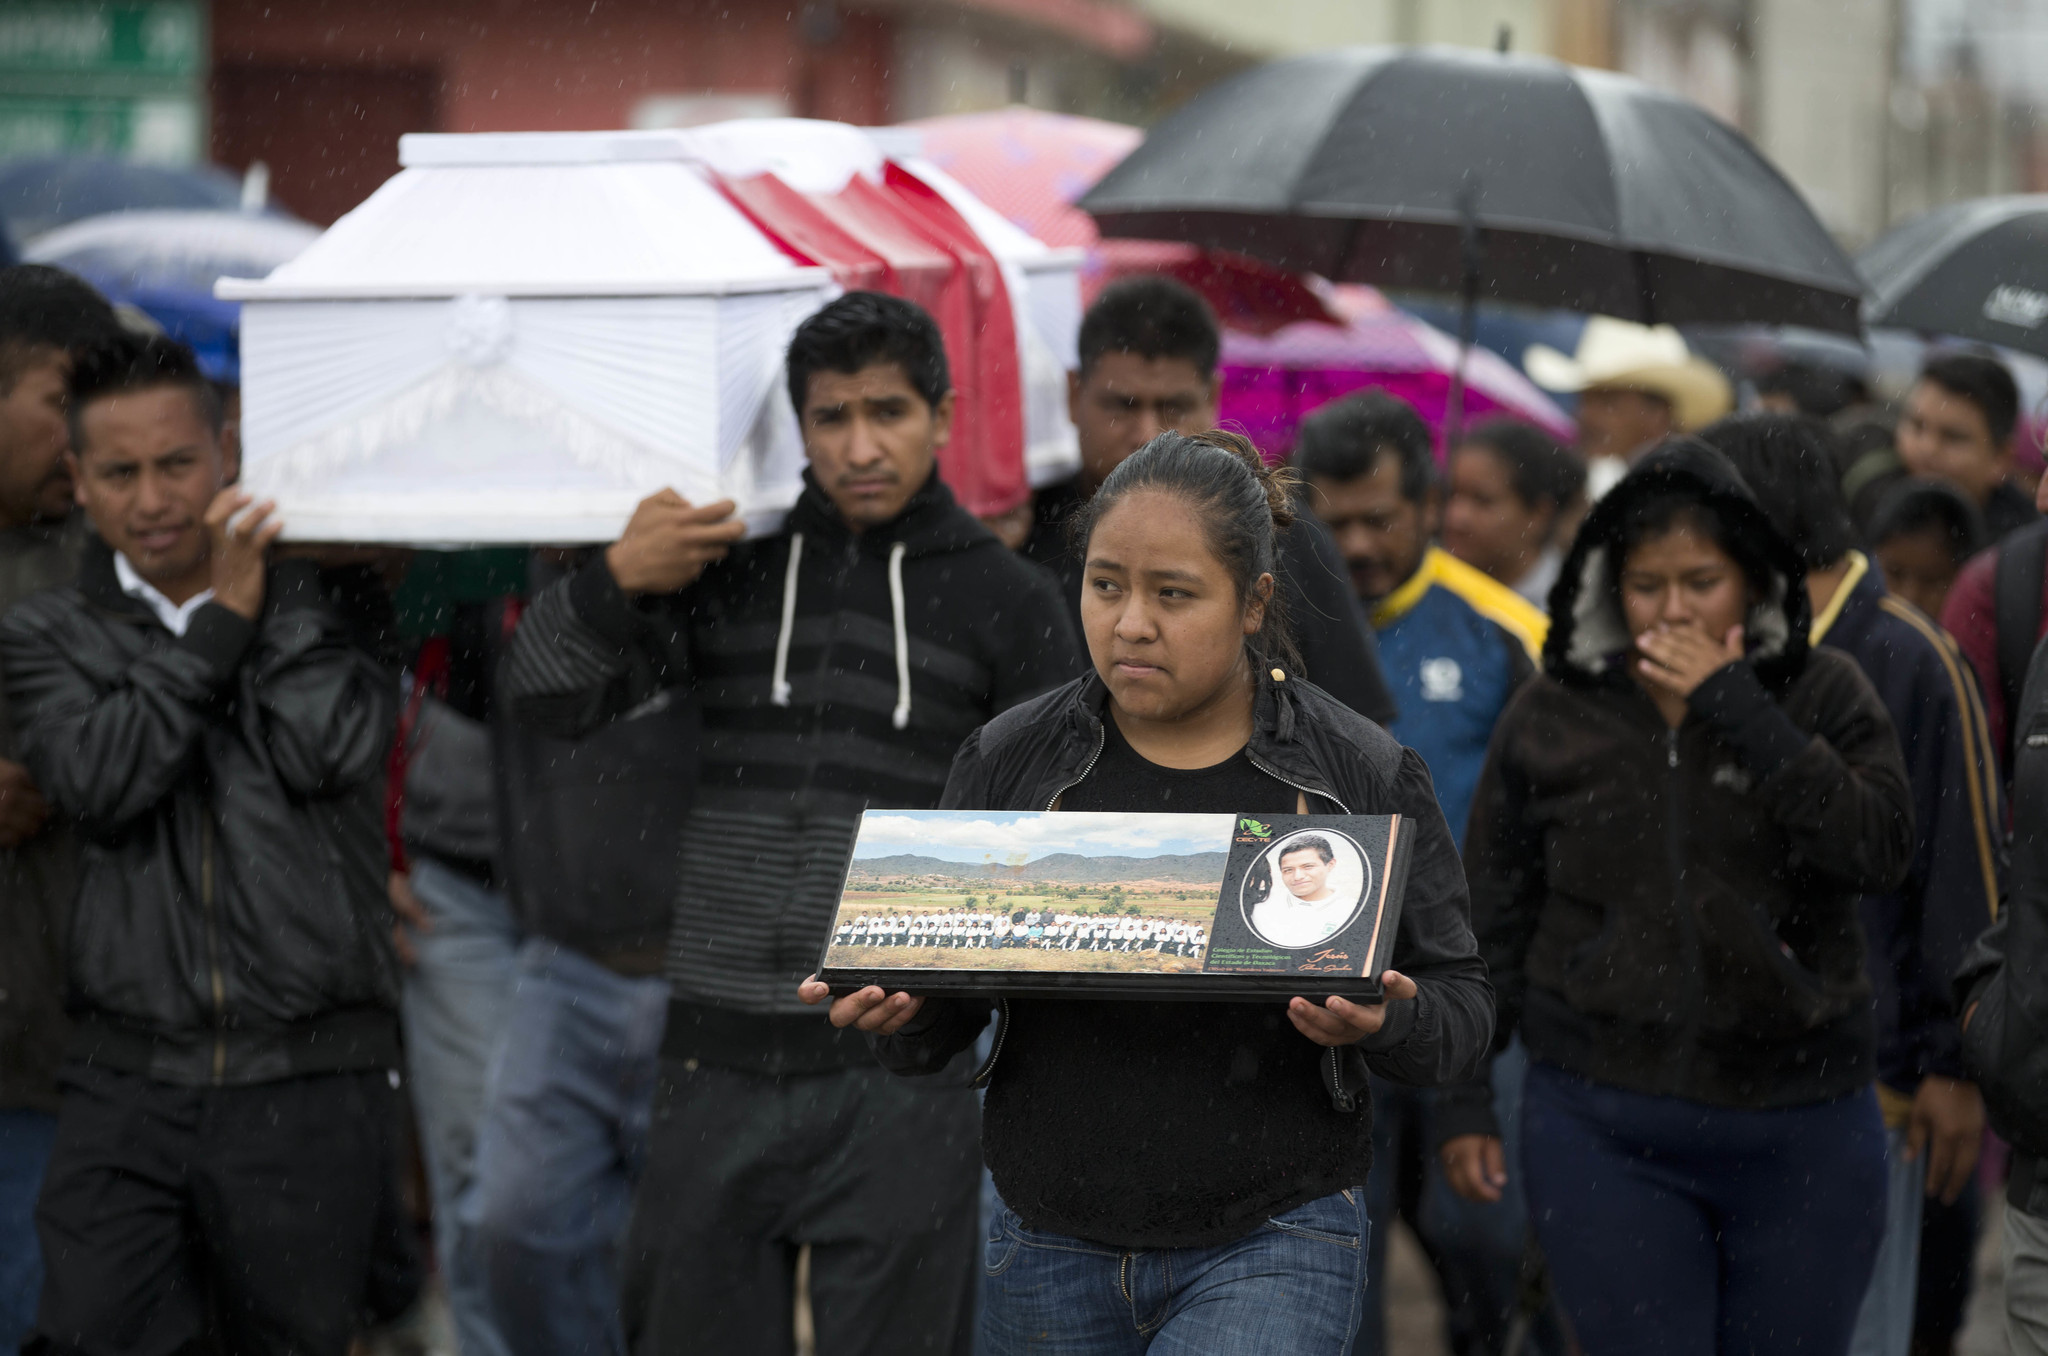 Mourners carry the coffin of Jesus Cadena Sanchez through Nochixtlan, where eight people died in June during a confrontation between police and protesting teachers who blockaded a roadway.